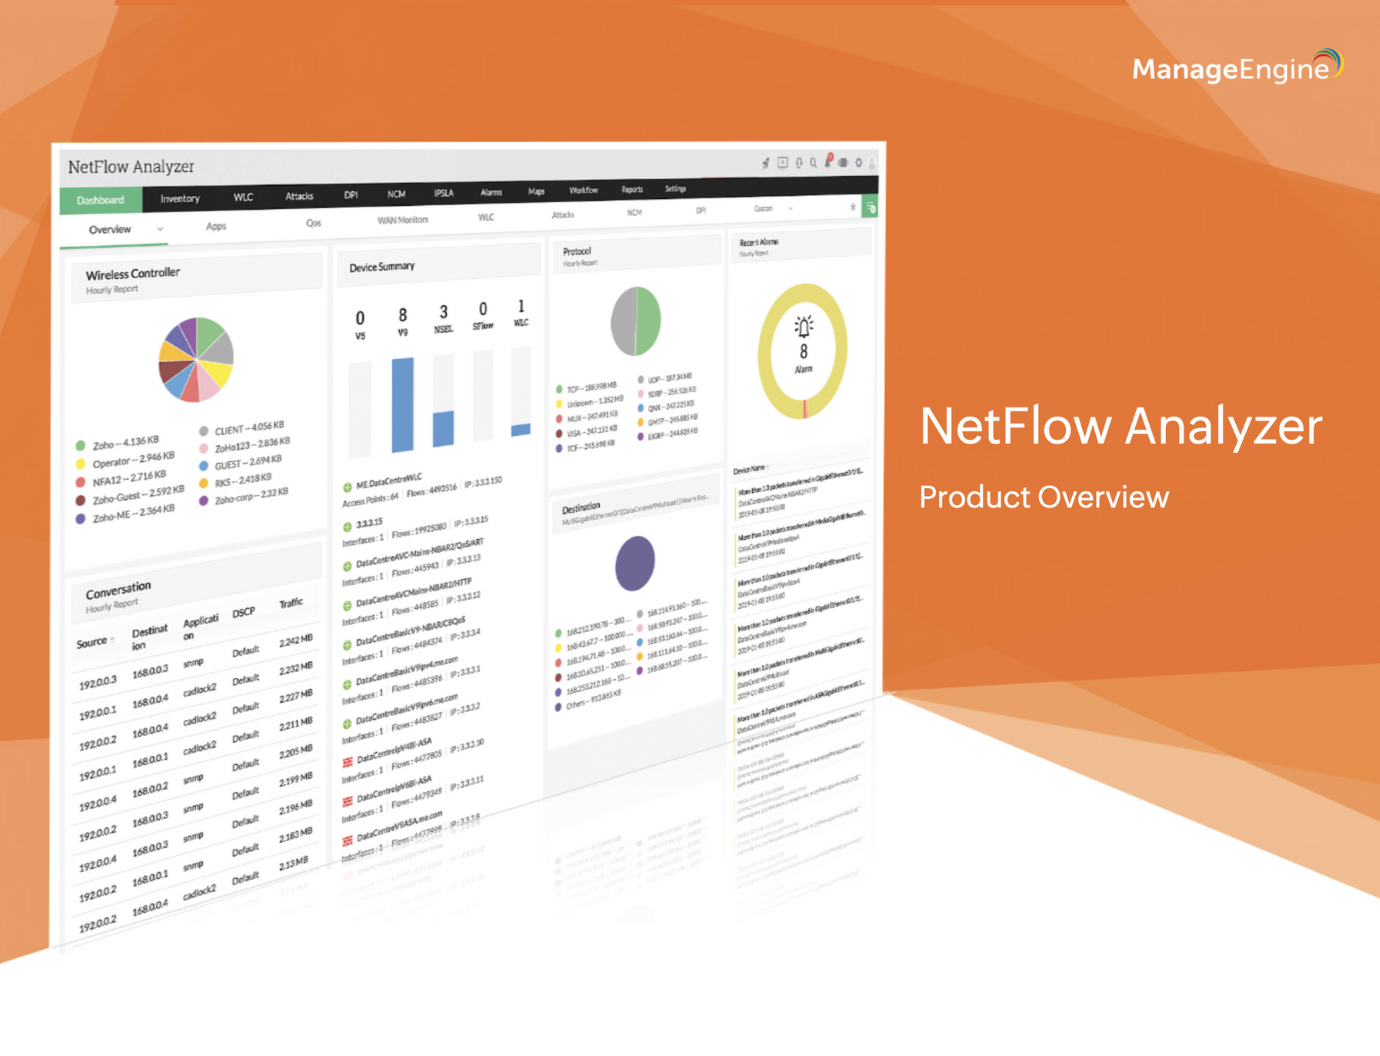 NetFlow Analyzer Product Overview